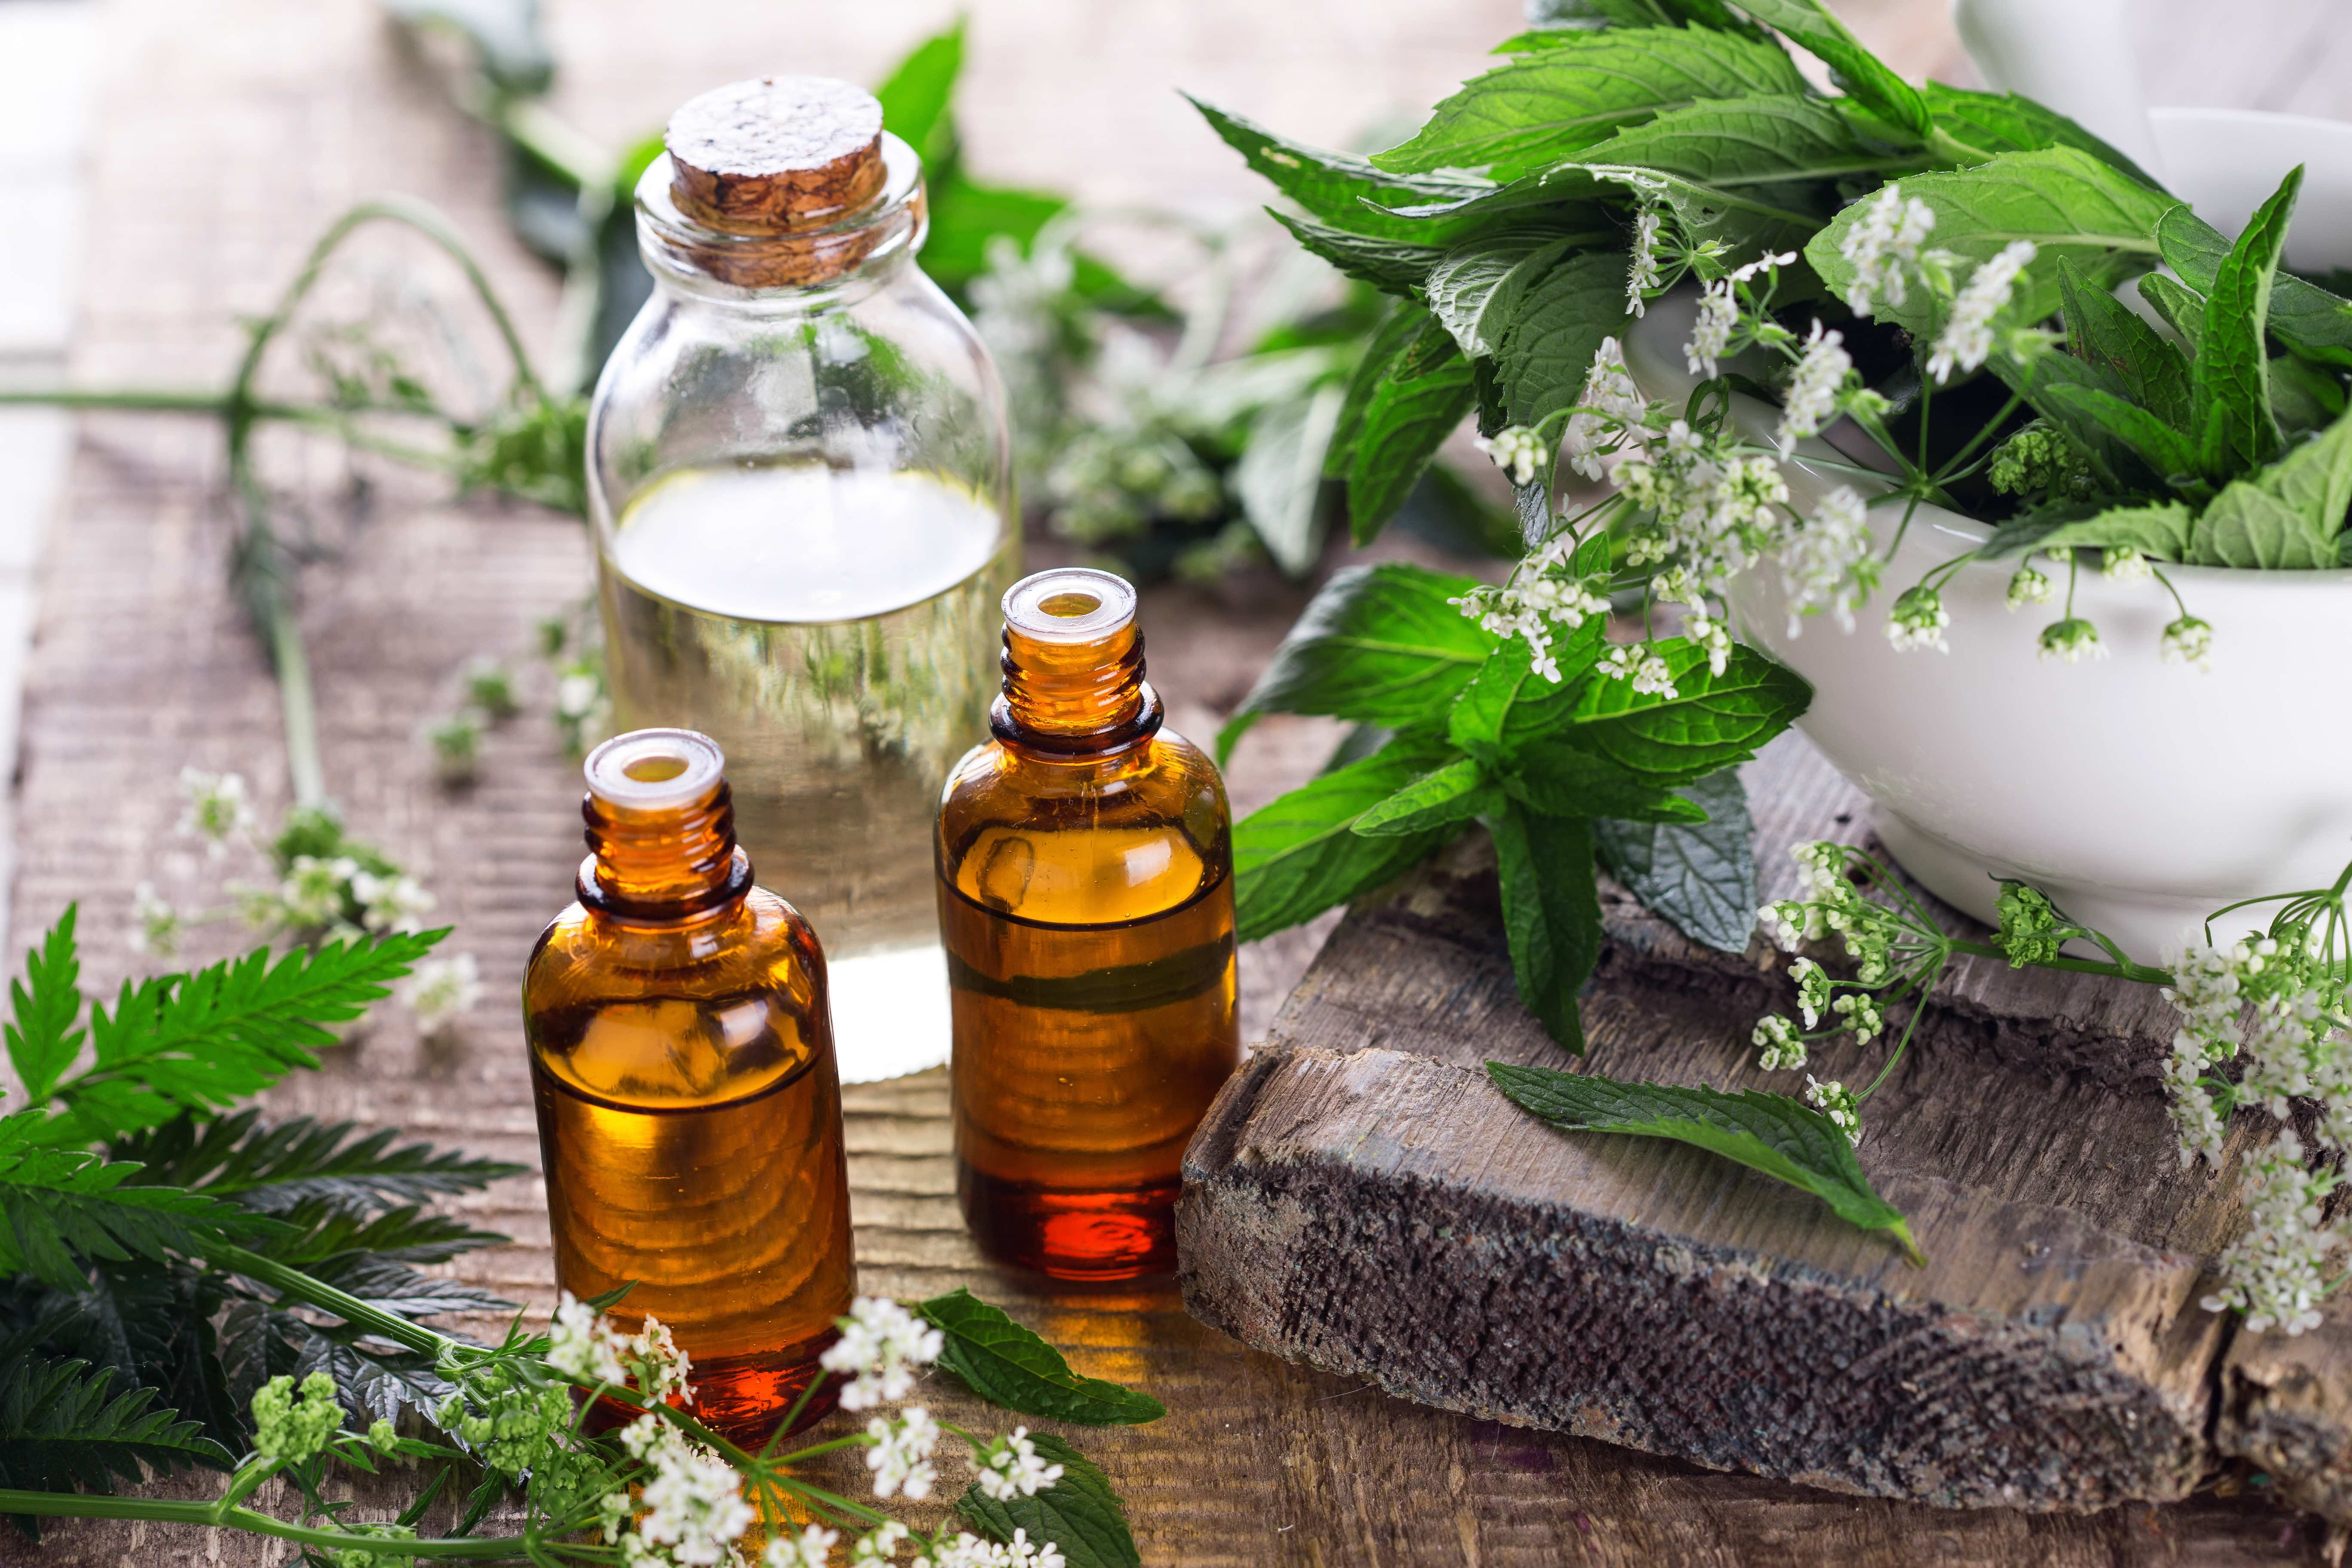 Group of essential oils